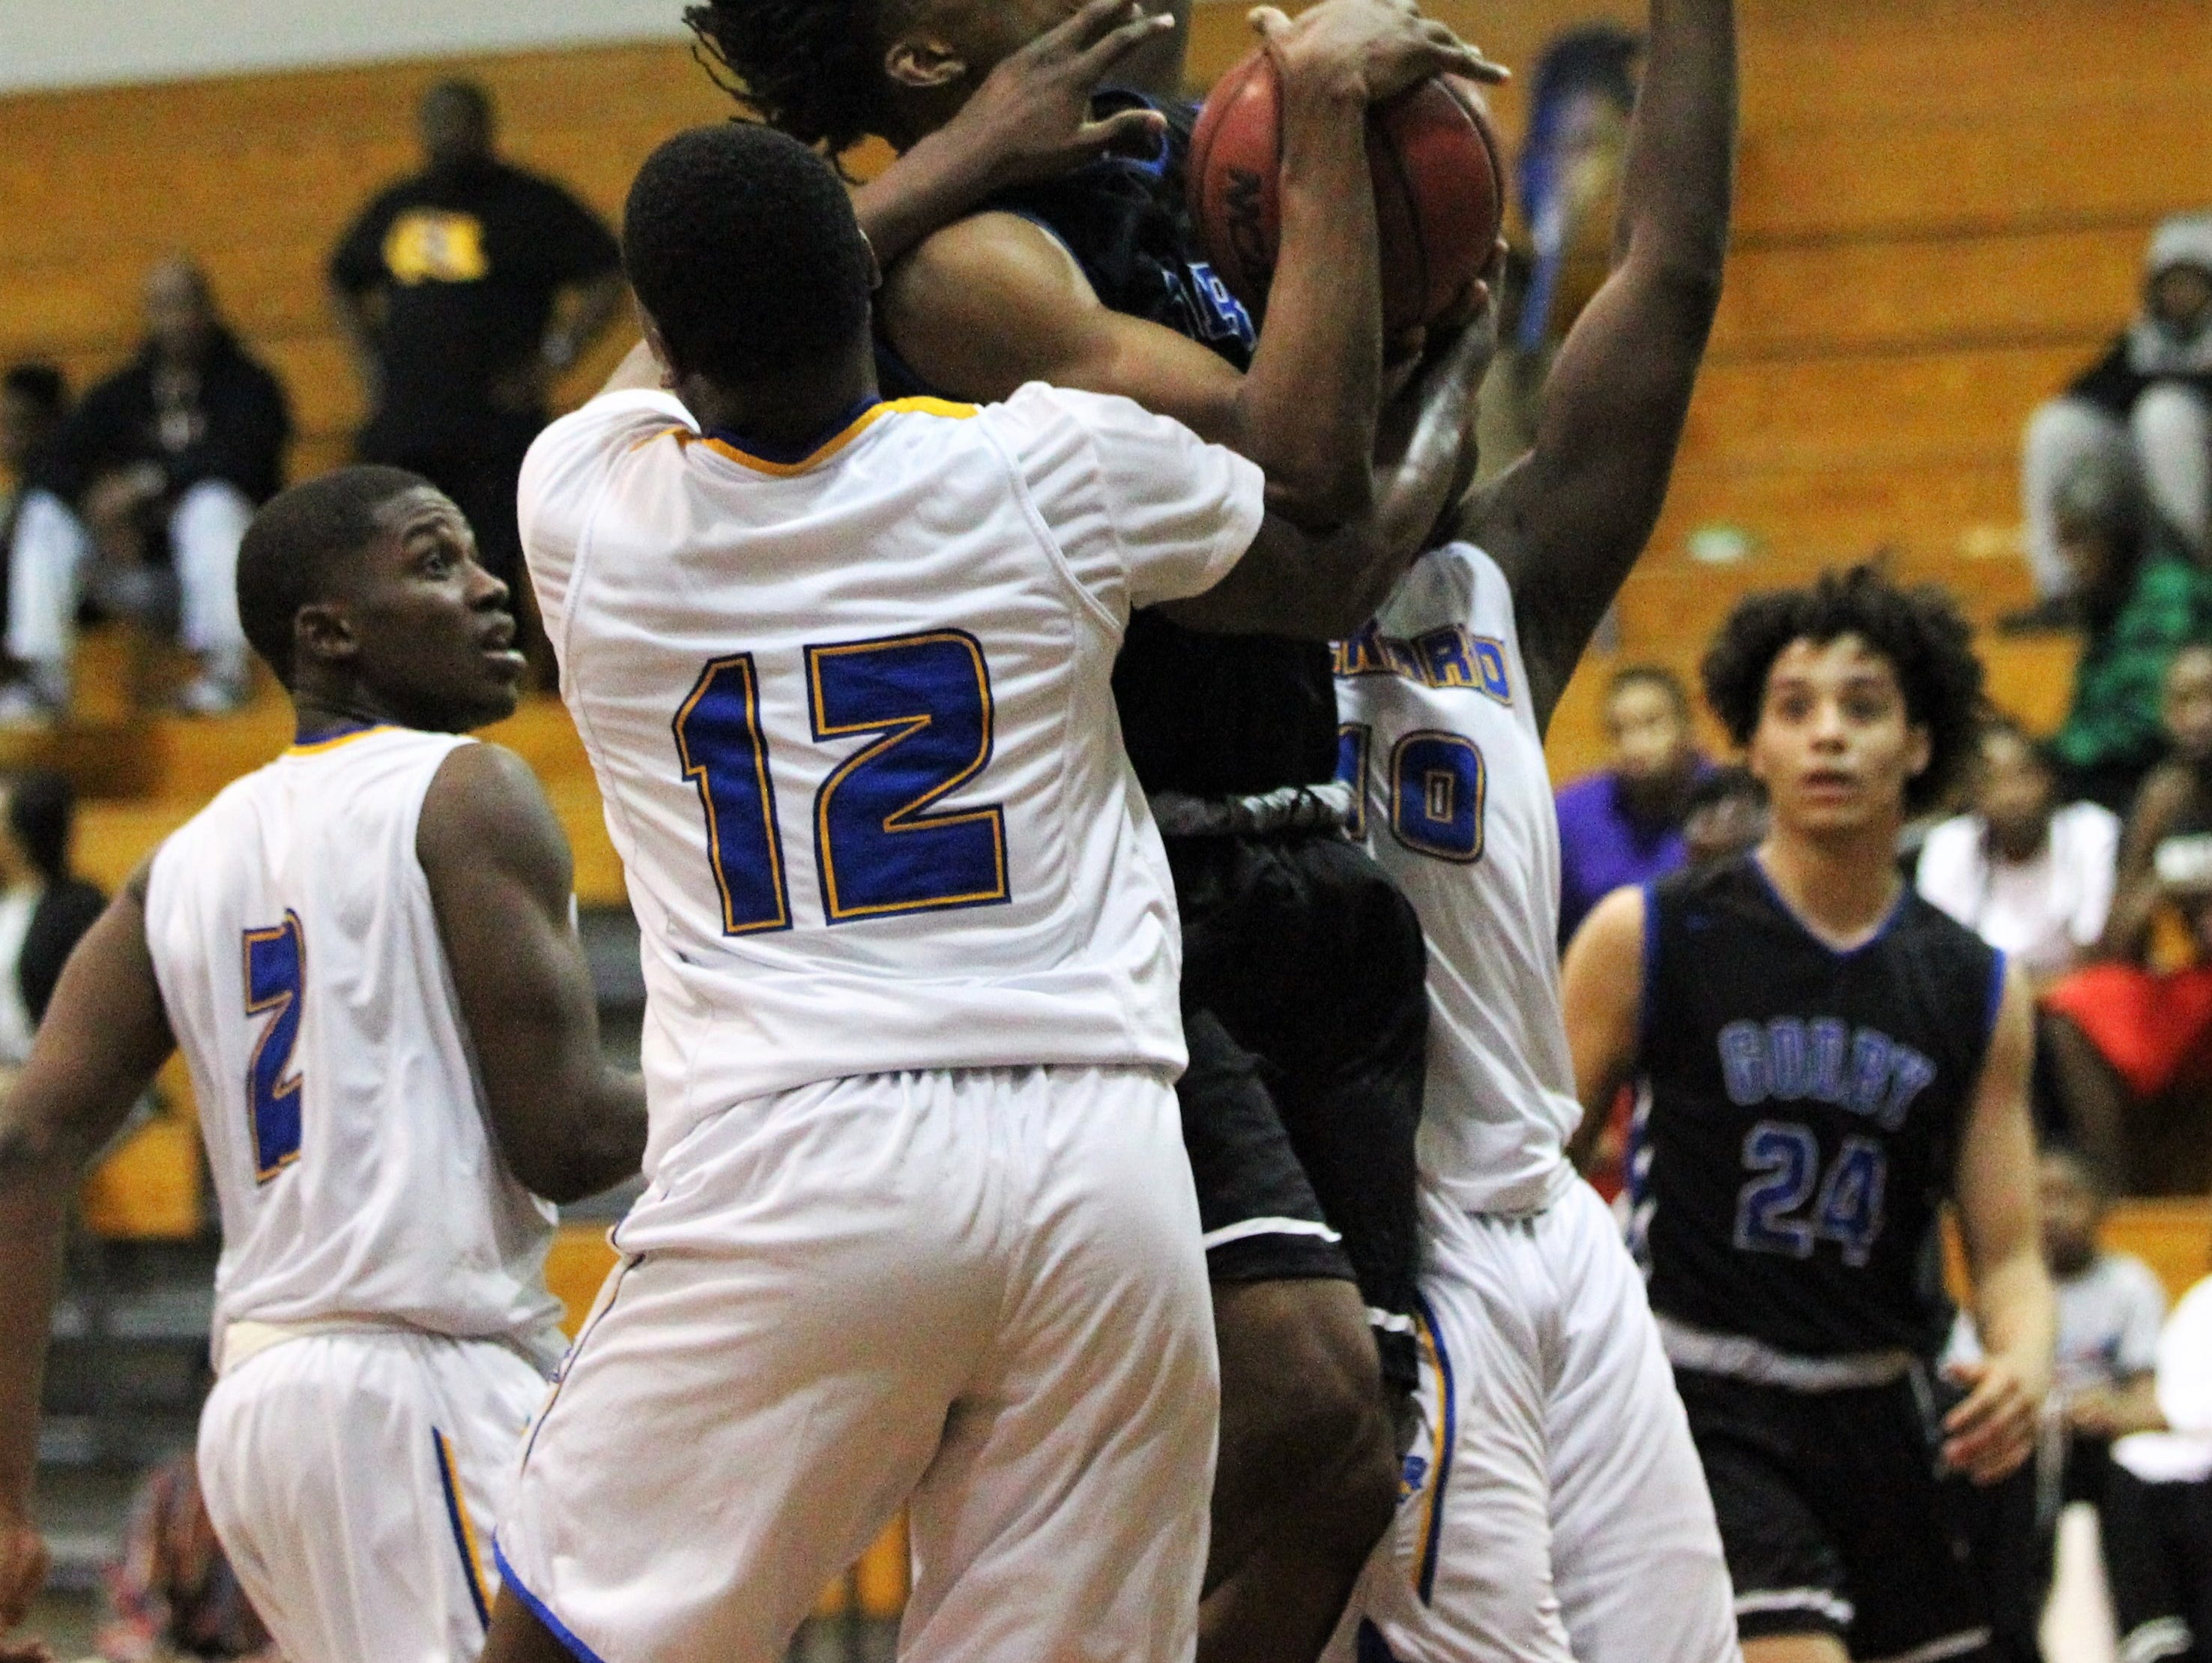 Godby's Steve Laurent is fouled on a drive as Rickards' boys basketball team beat Godby 58-47 during a District 2-6A championship game at Chiles on Feb. 15, 2019.